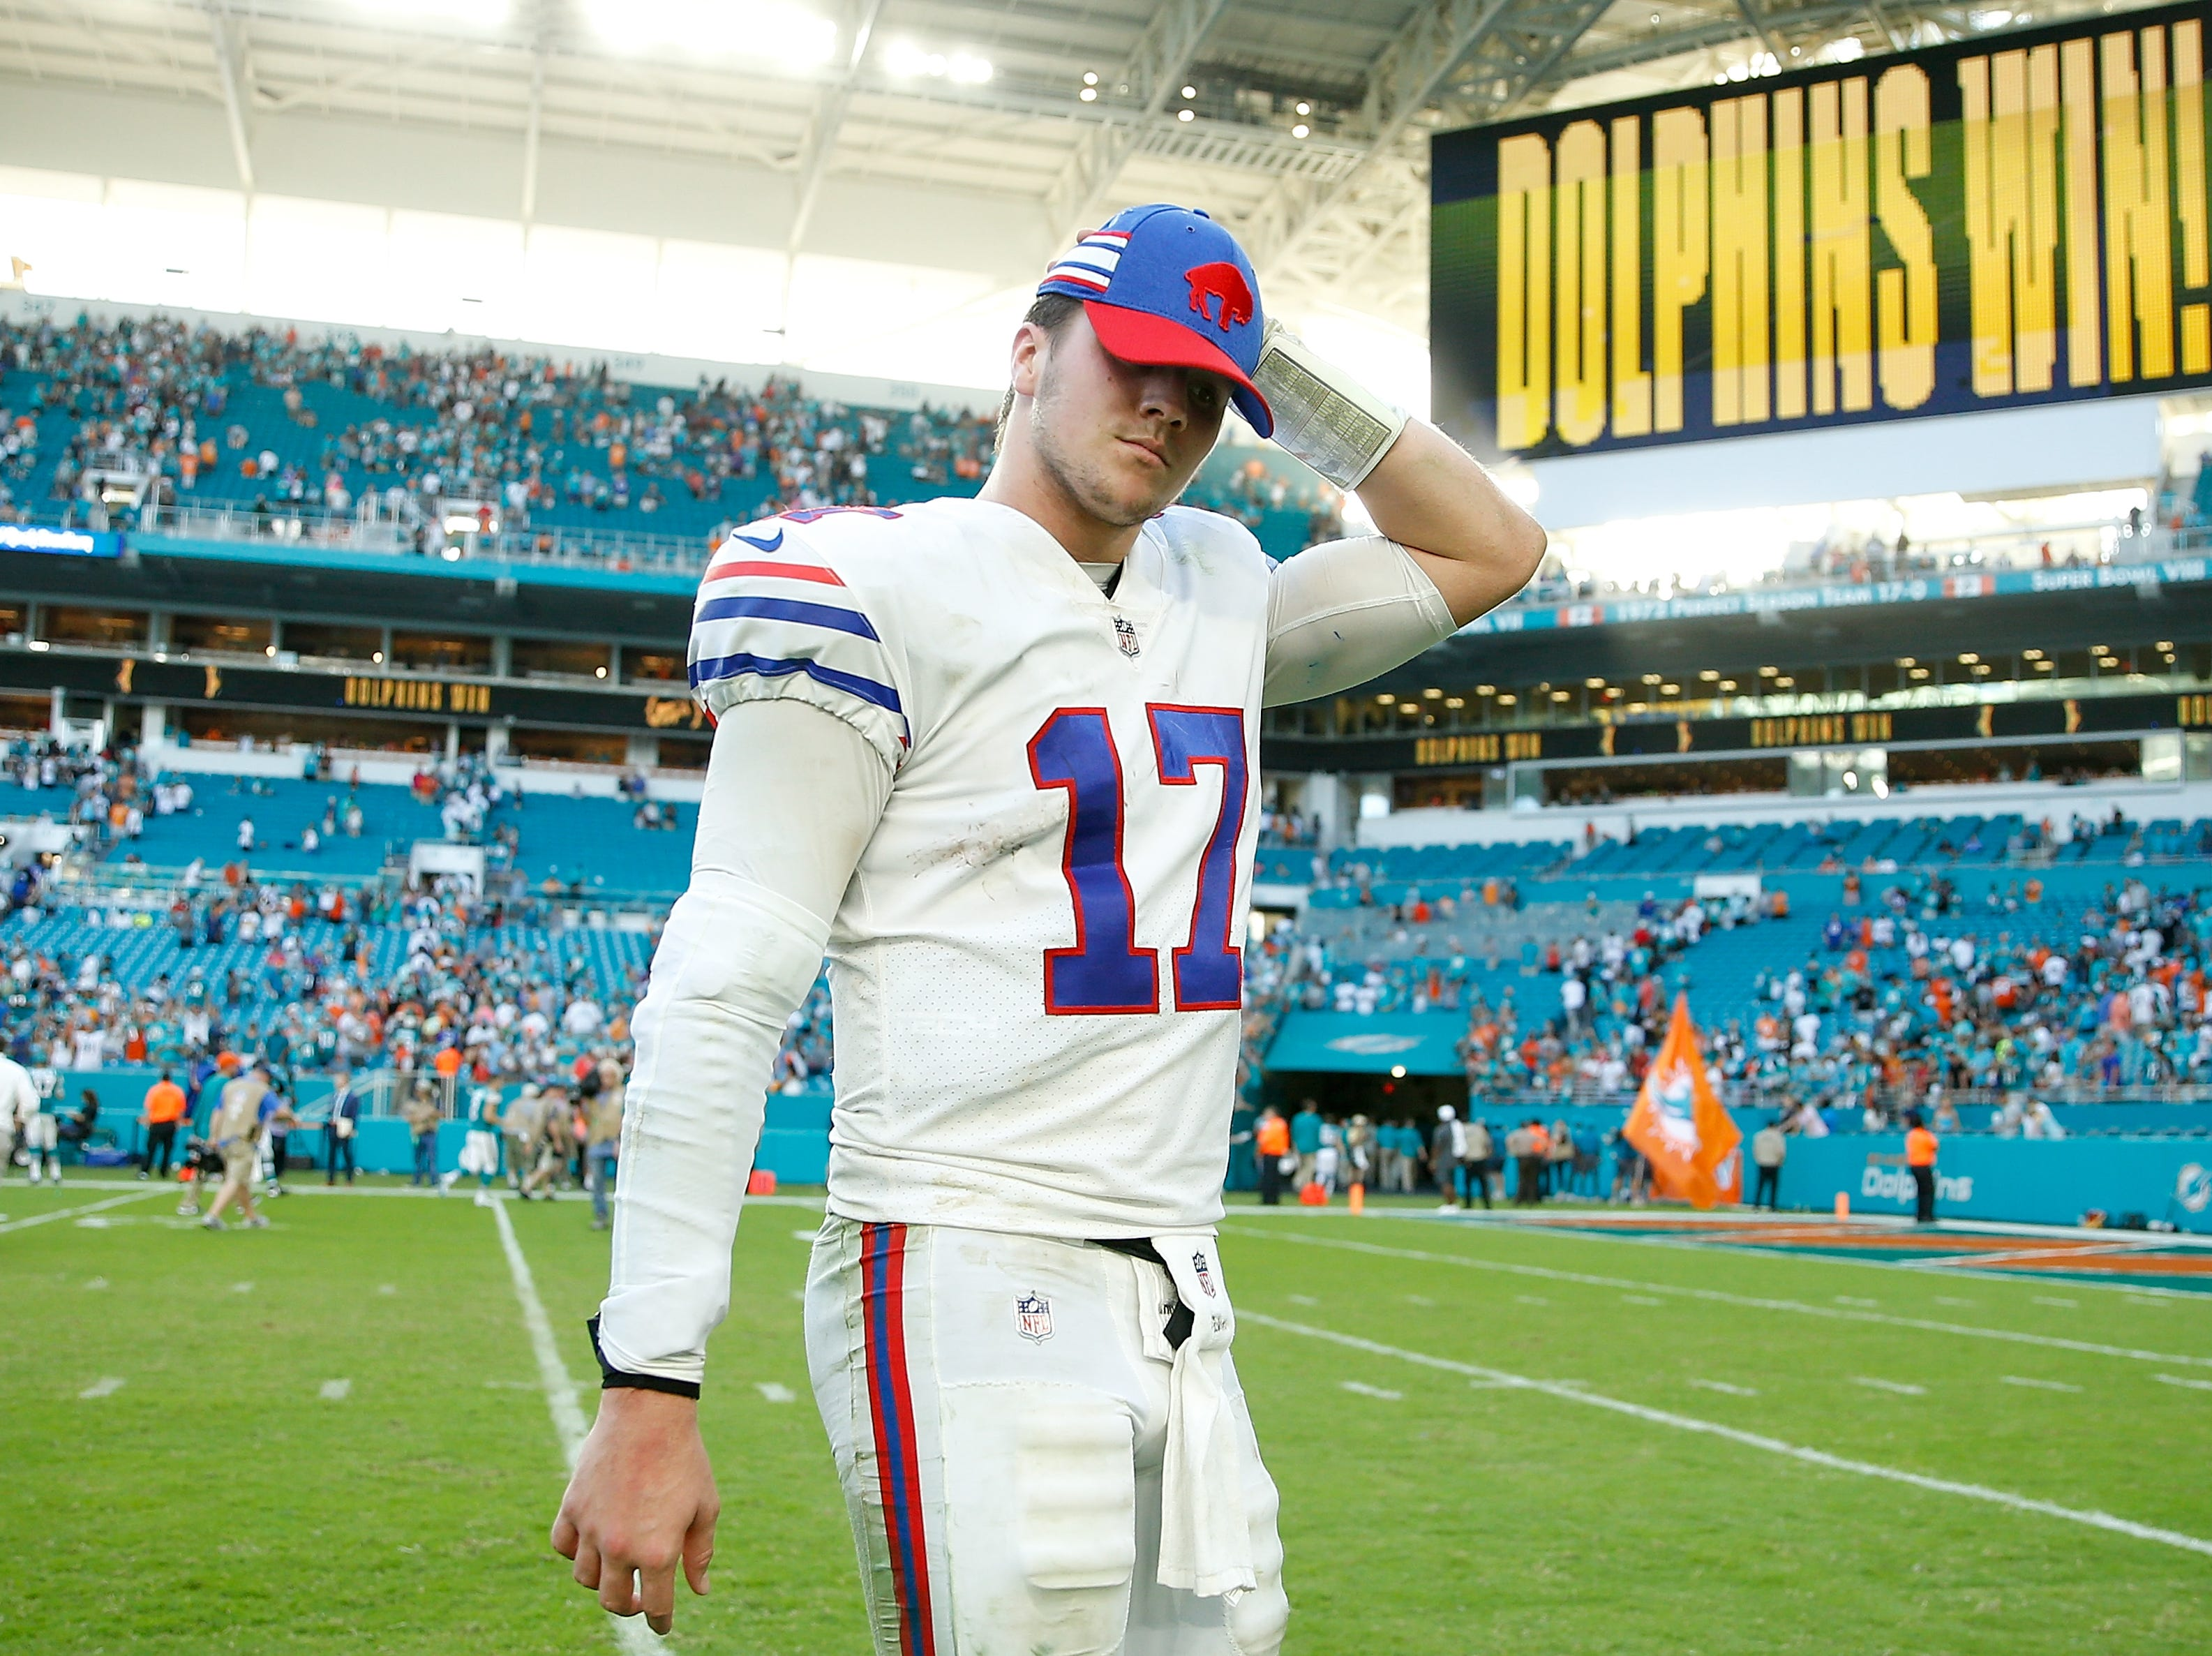 MIAMI, FL - DECEMBER 02:  Josh Allen #17 of the Buffalo Bills reacts after losing to the Miami Dolphins 21-17 at Hard Rock Stadium on December 2, 2018 in Miami, Florida.  (Photo by Michael Reaves/Getty Images)